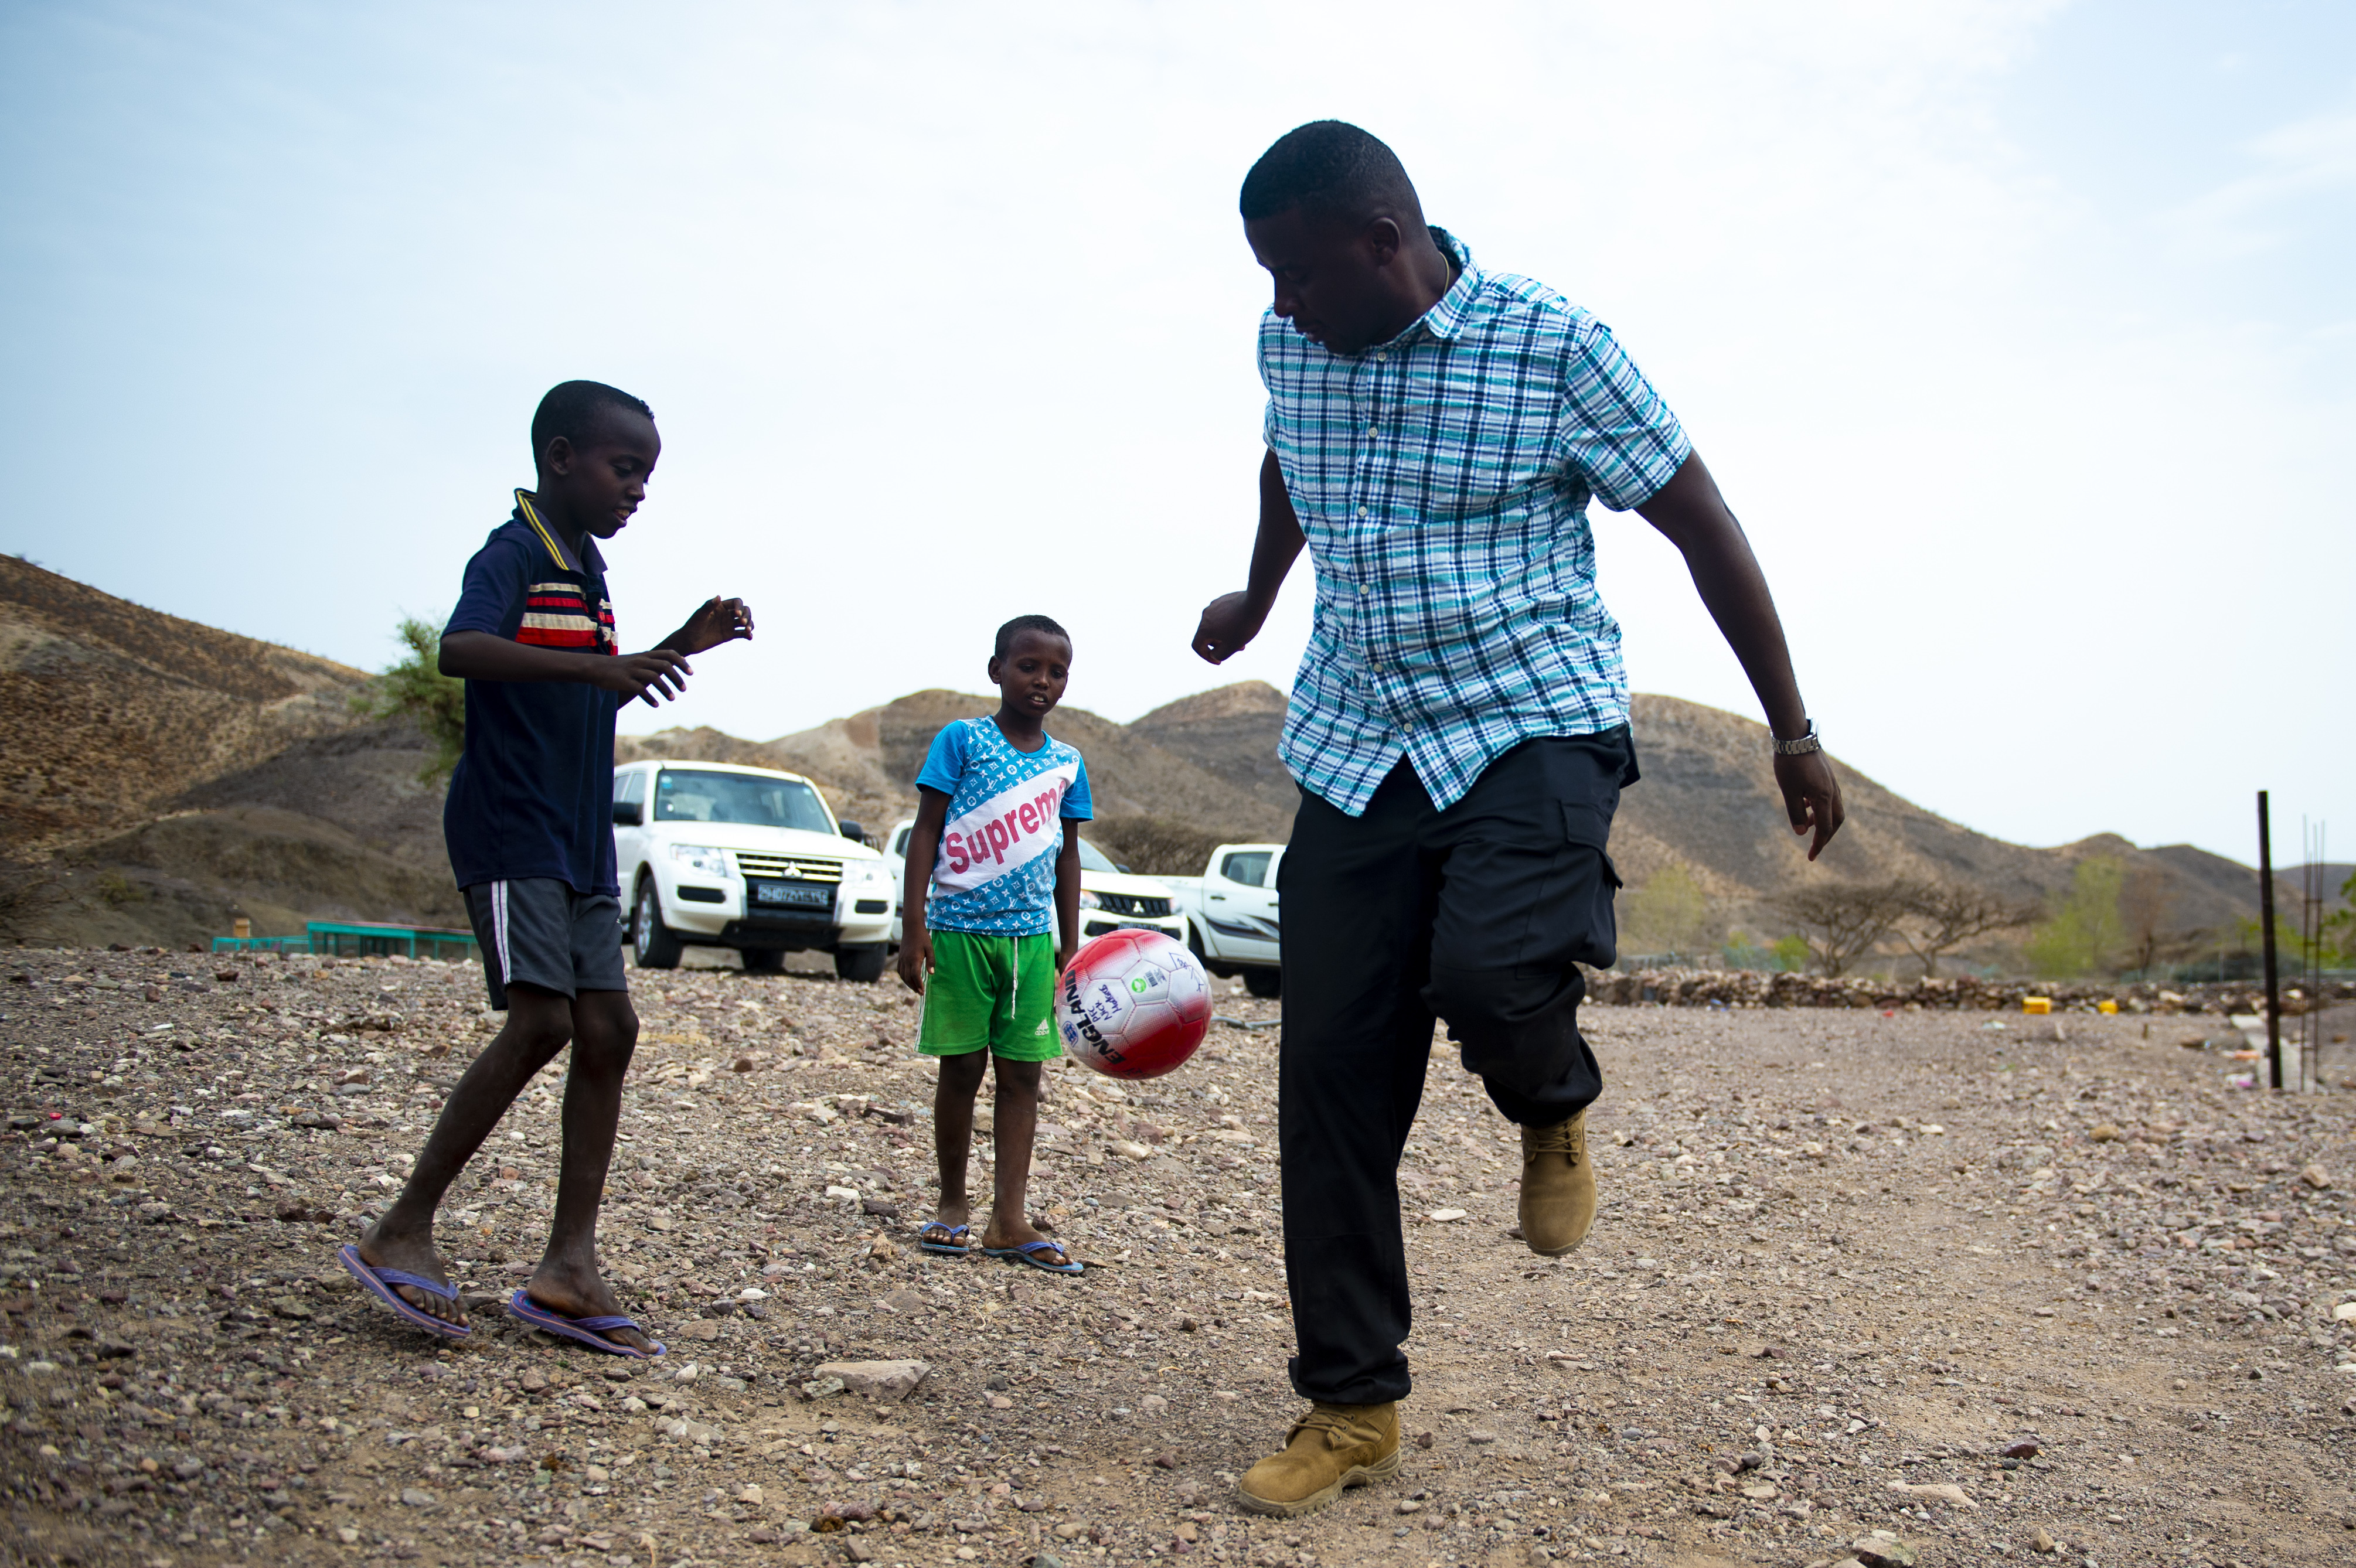 Spc. Apollo Luanje, 404th Civil Affairs Battalion, plays soccer with children in the village Ribta in the Tadjoura region of Djibouti, August 15, 2018. 407th Civil Affairs mission is to develop and maintain relationships with communities. (U.S. Air Force photo by Senior Airman Scott Jackson)